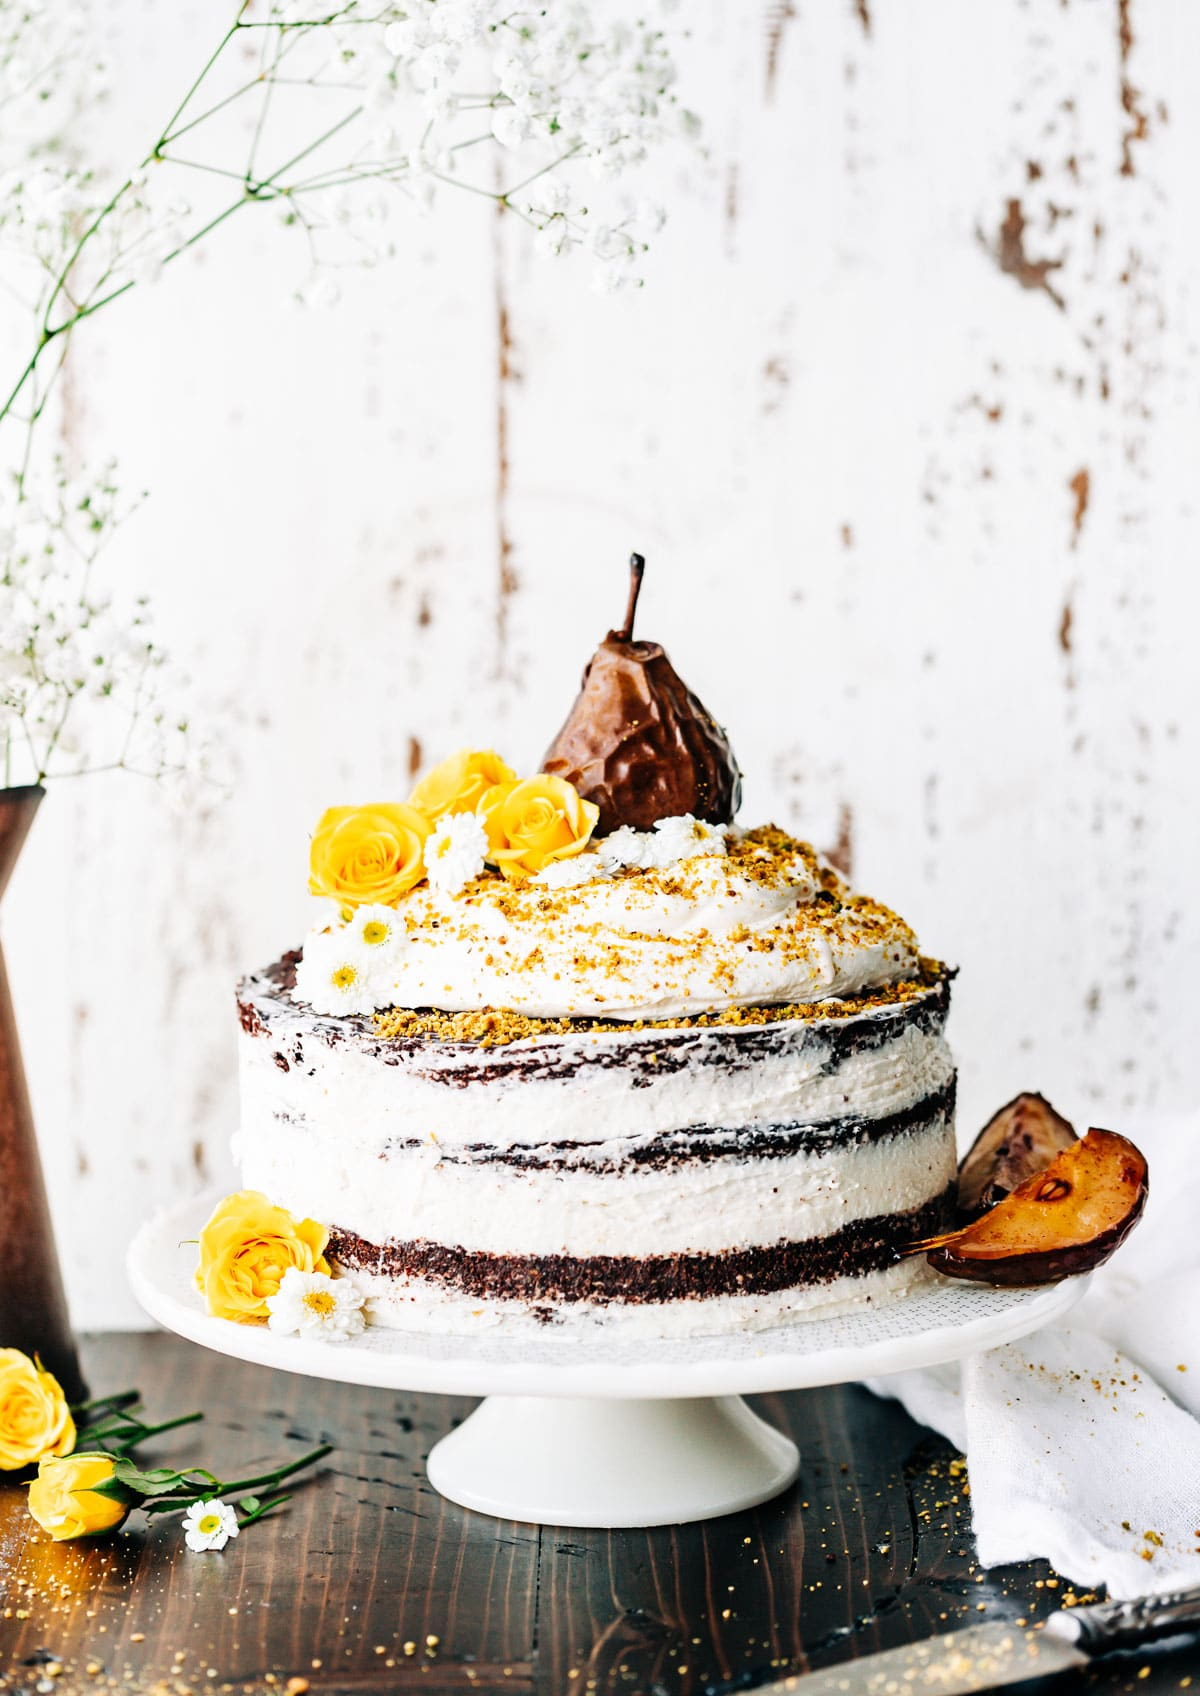 beautifully decorated naked cake with coconut frosting, edible flowers and glazed pear on top